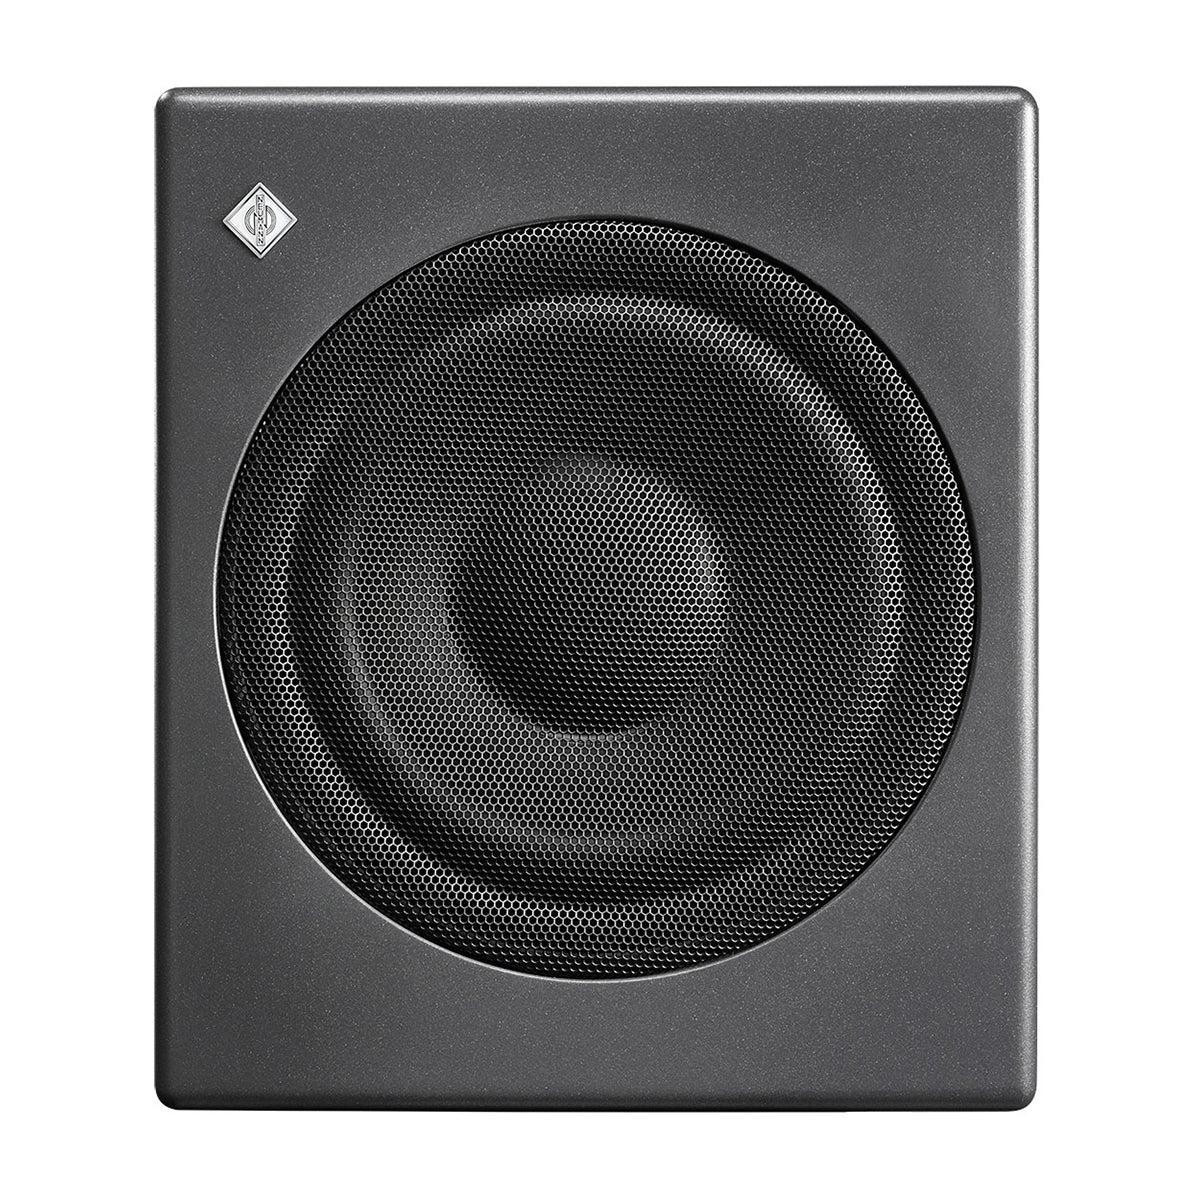 Neumann KH750 DSP Compact DSP-Controlled Subwoofer